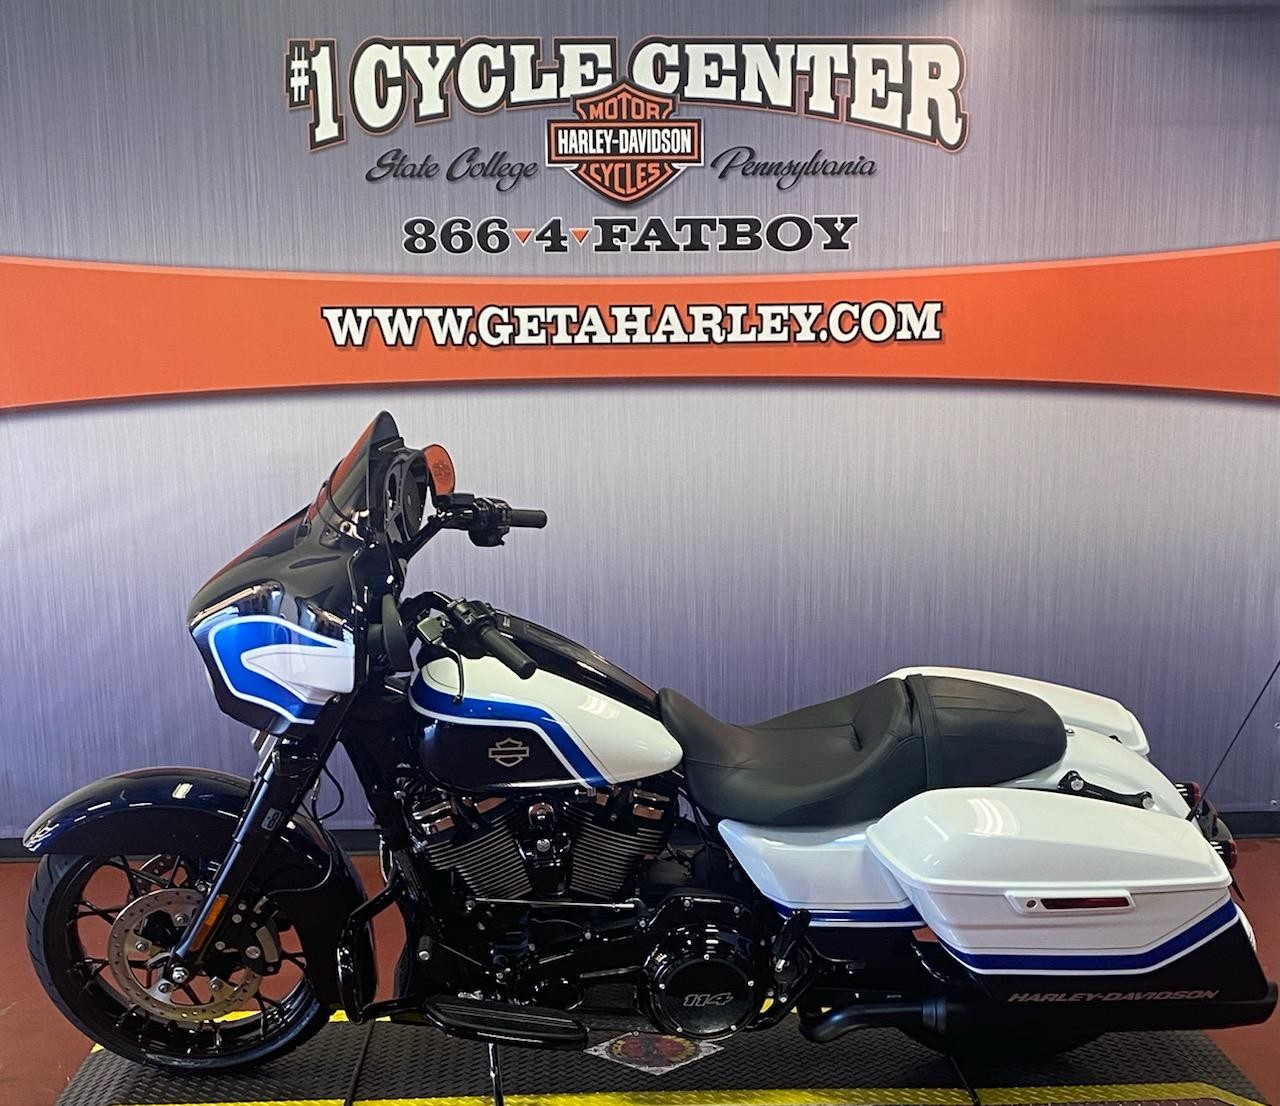 2021 Harley-Davidson Grand American Touring Street Glide Special at #1 Cycle Center Harley-Davidson